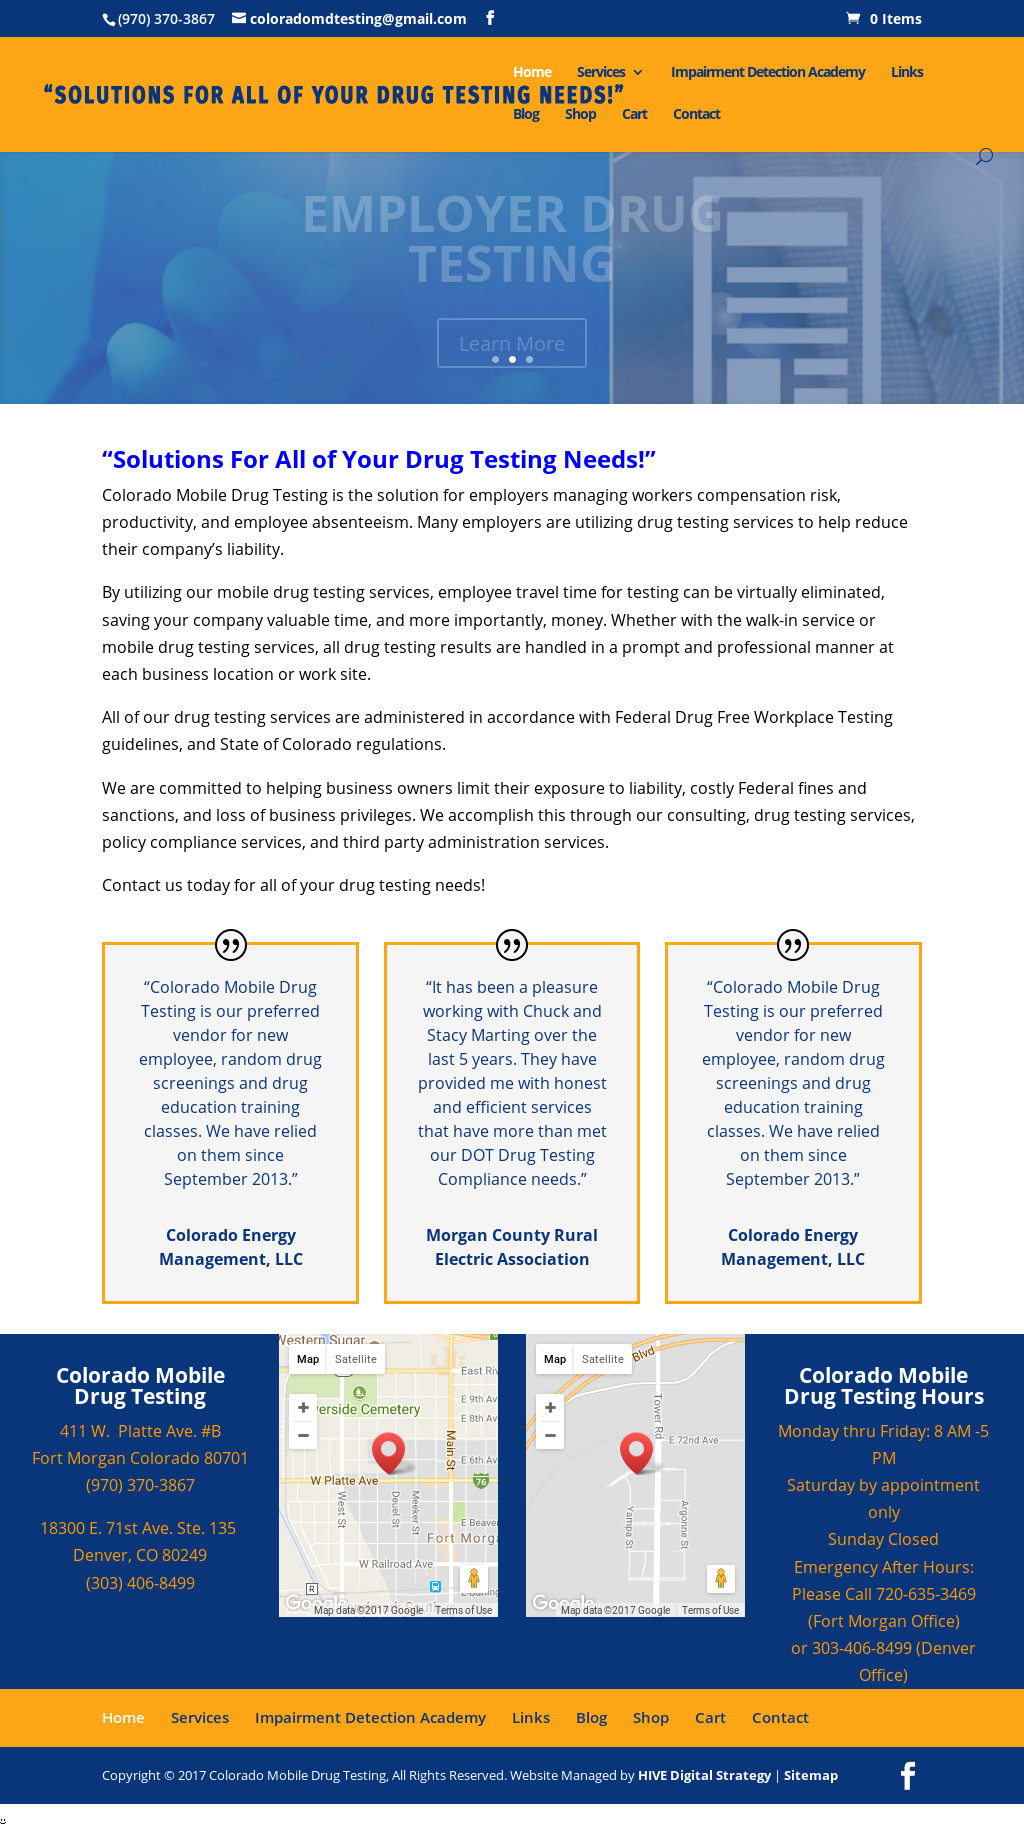 Colorado Mobile Drug Testing Competitors, Revenue and Employees